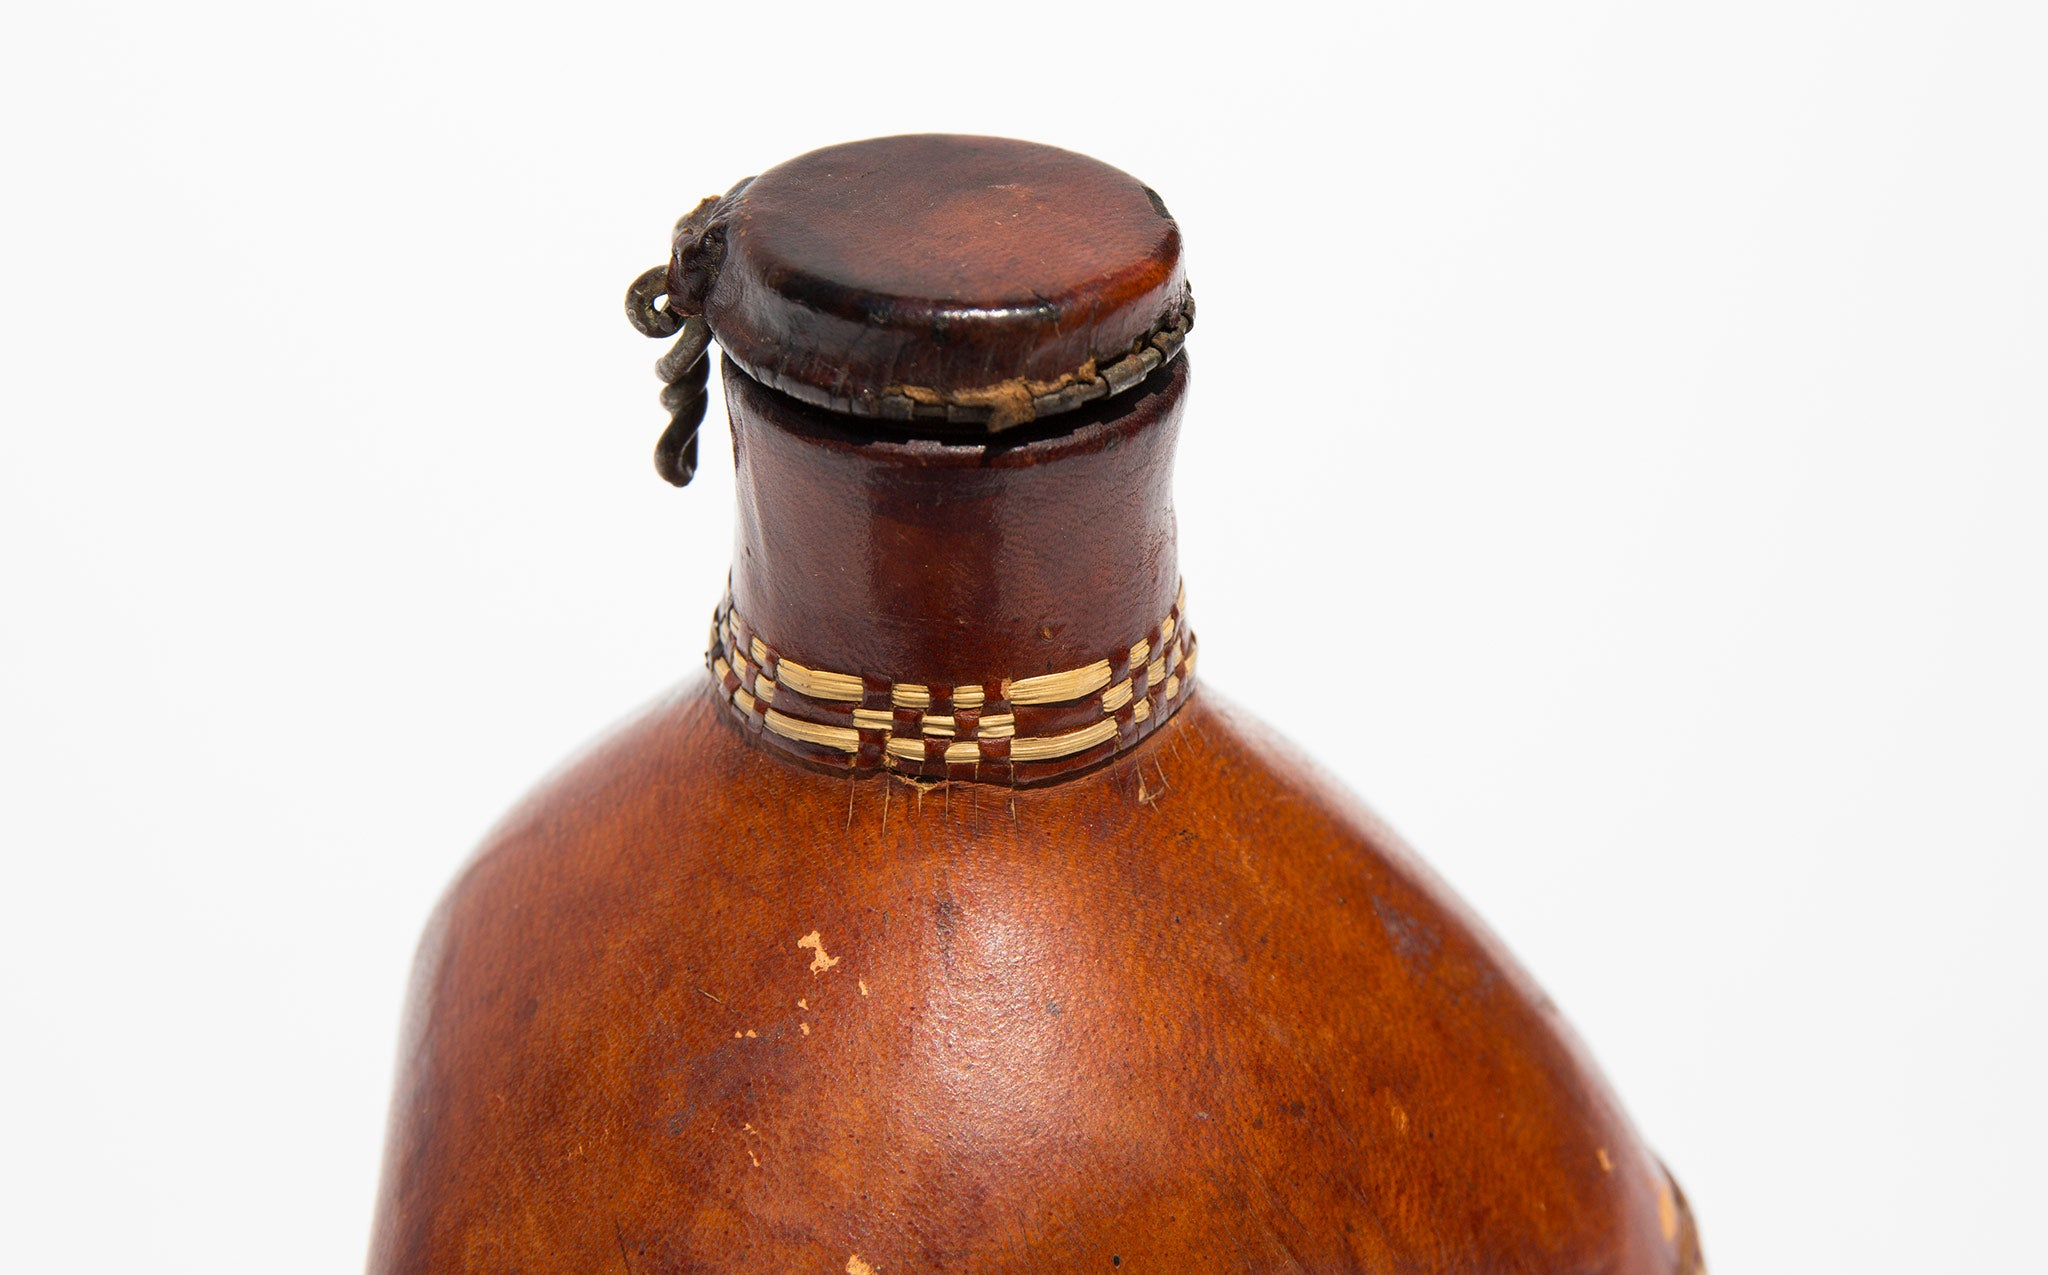 Vintage Western Pinch Bottle